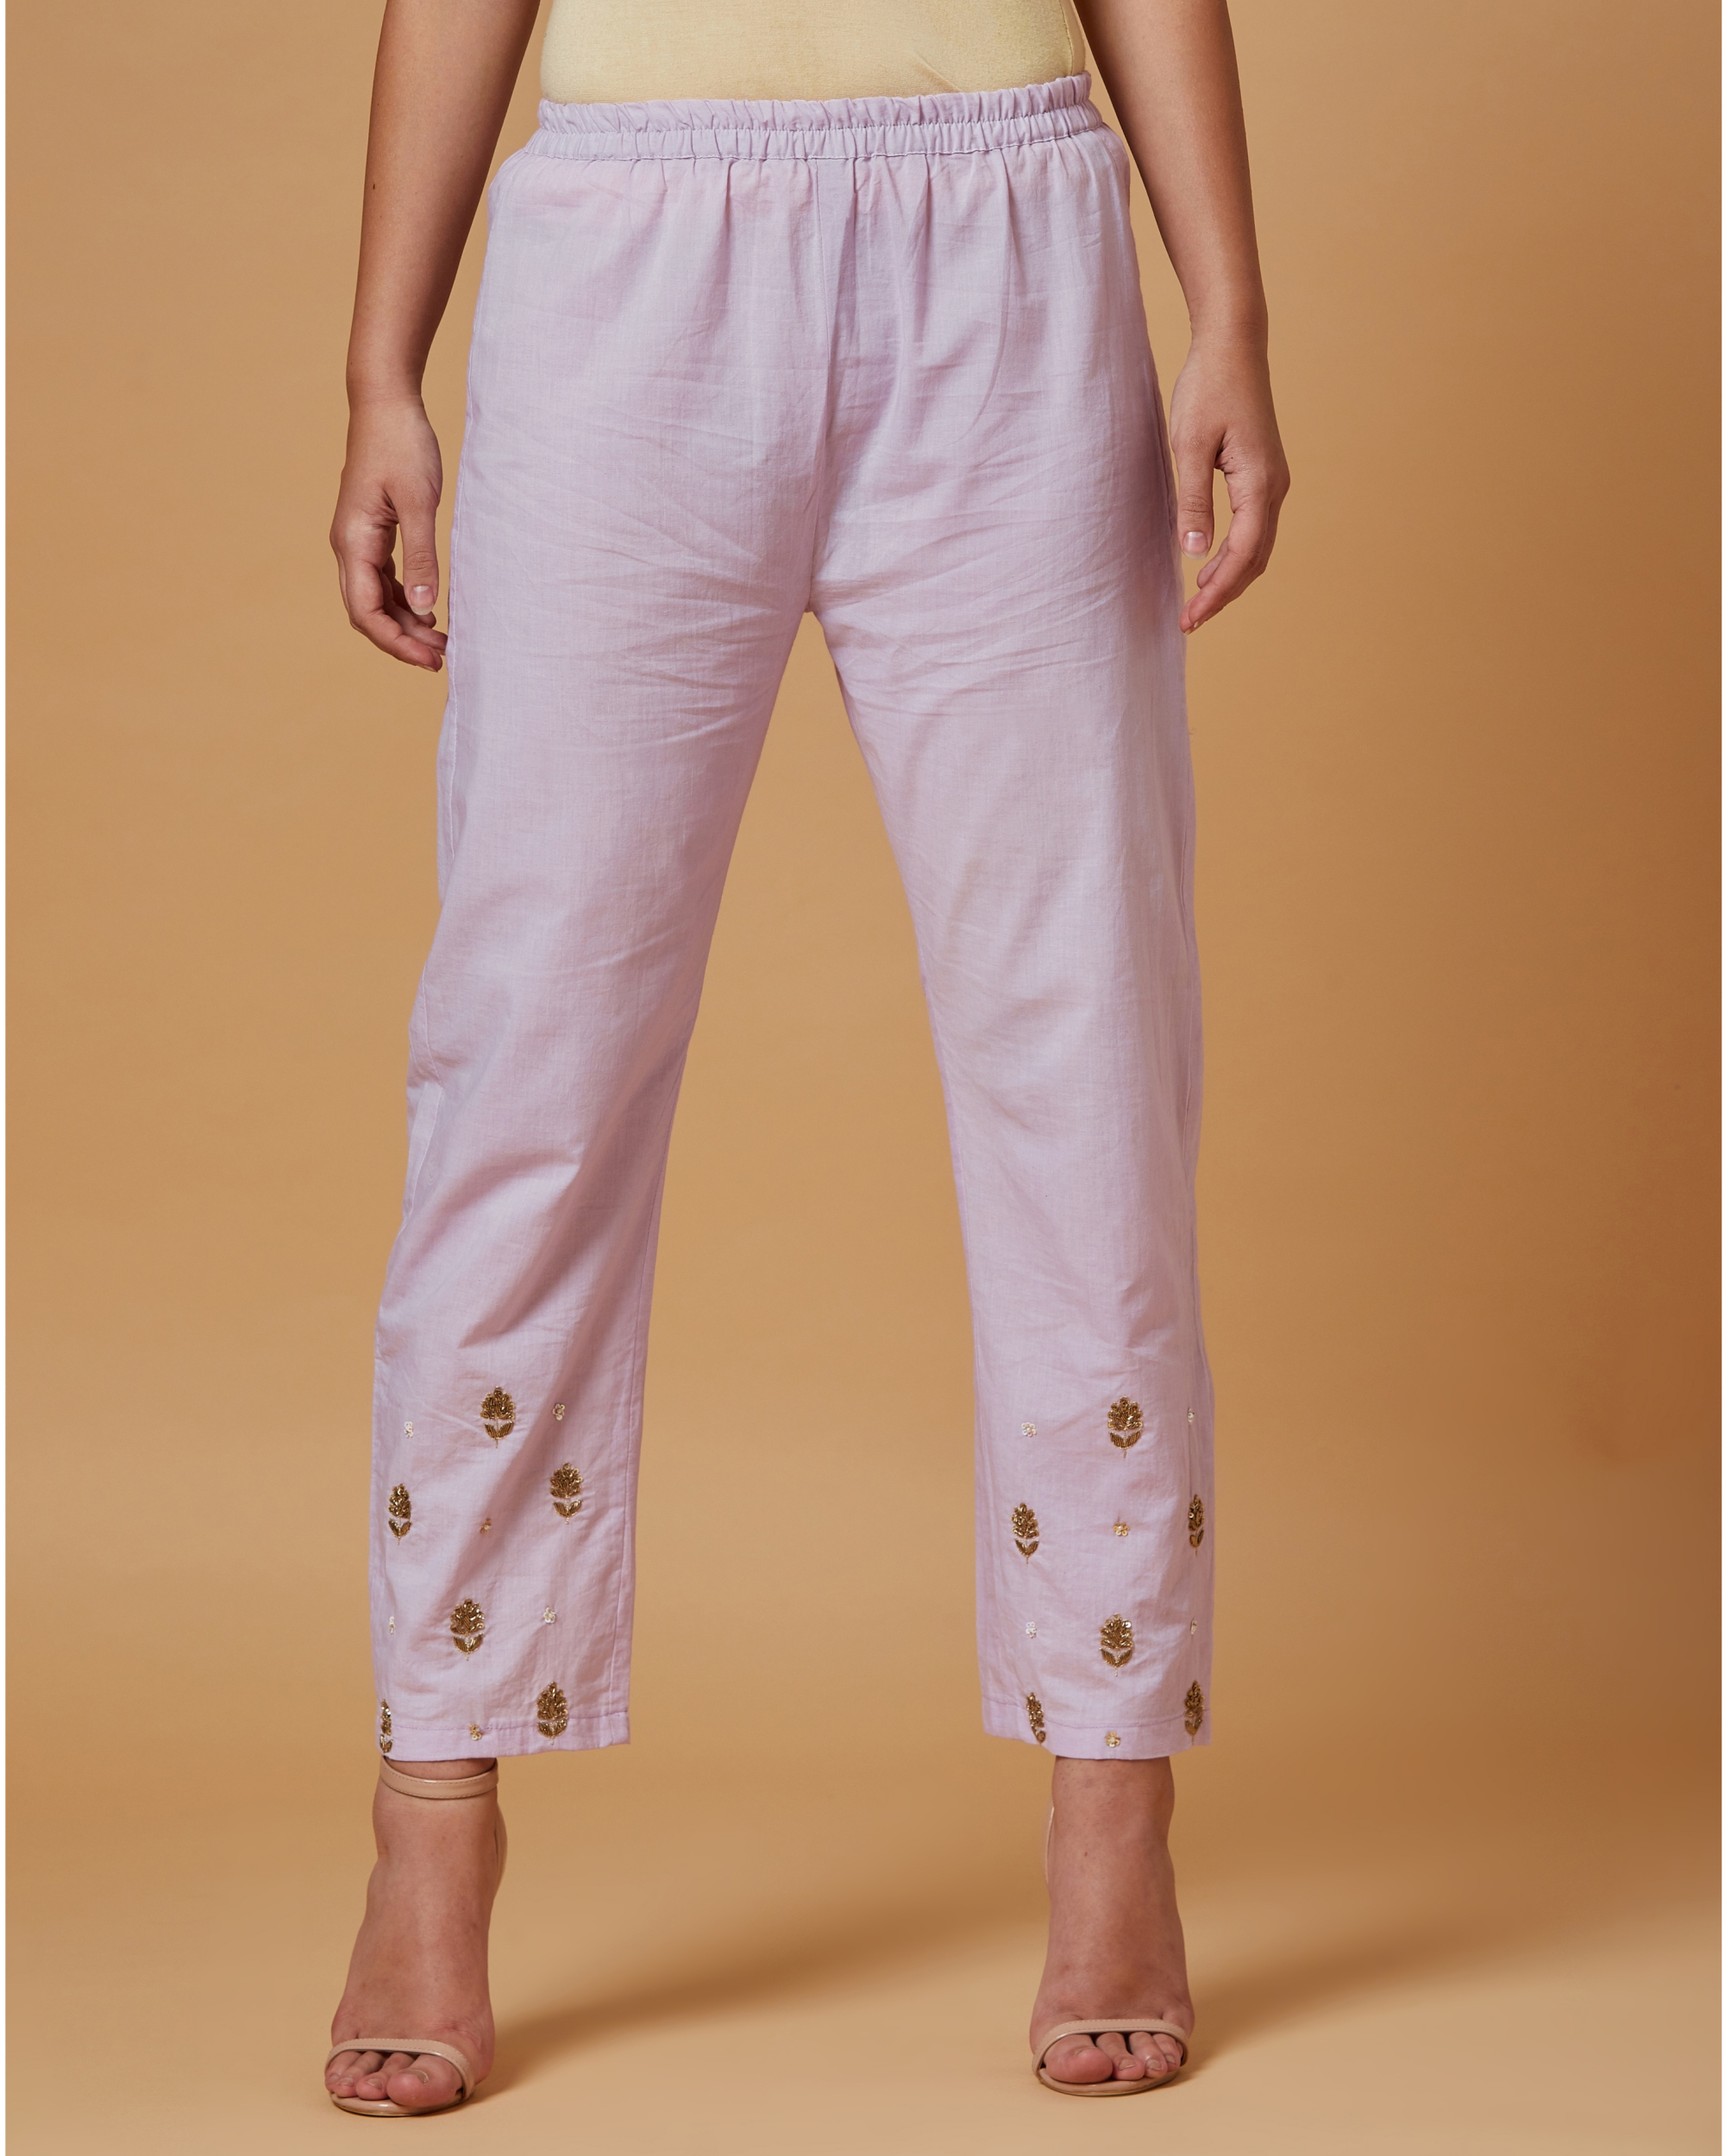 Lilac floral boota embroidered pants